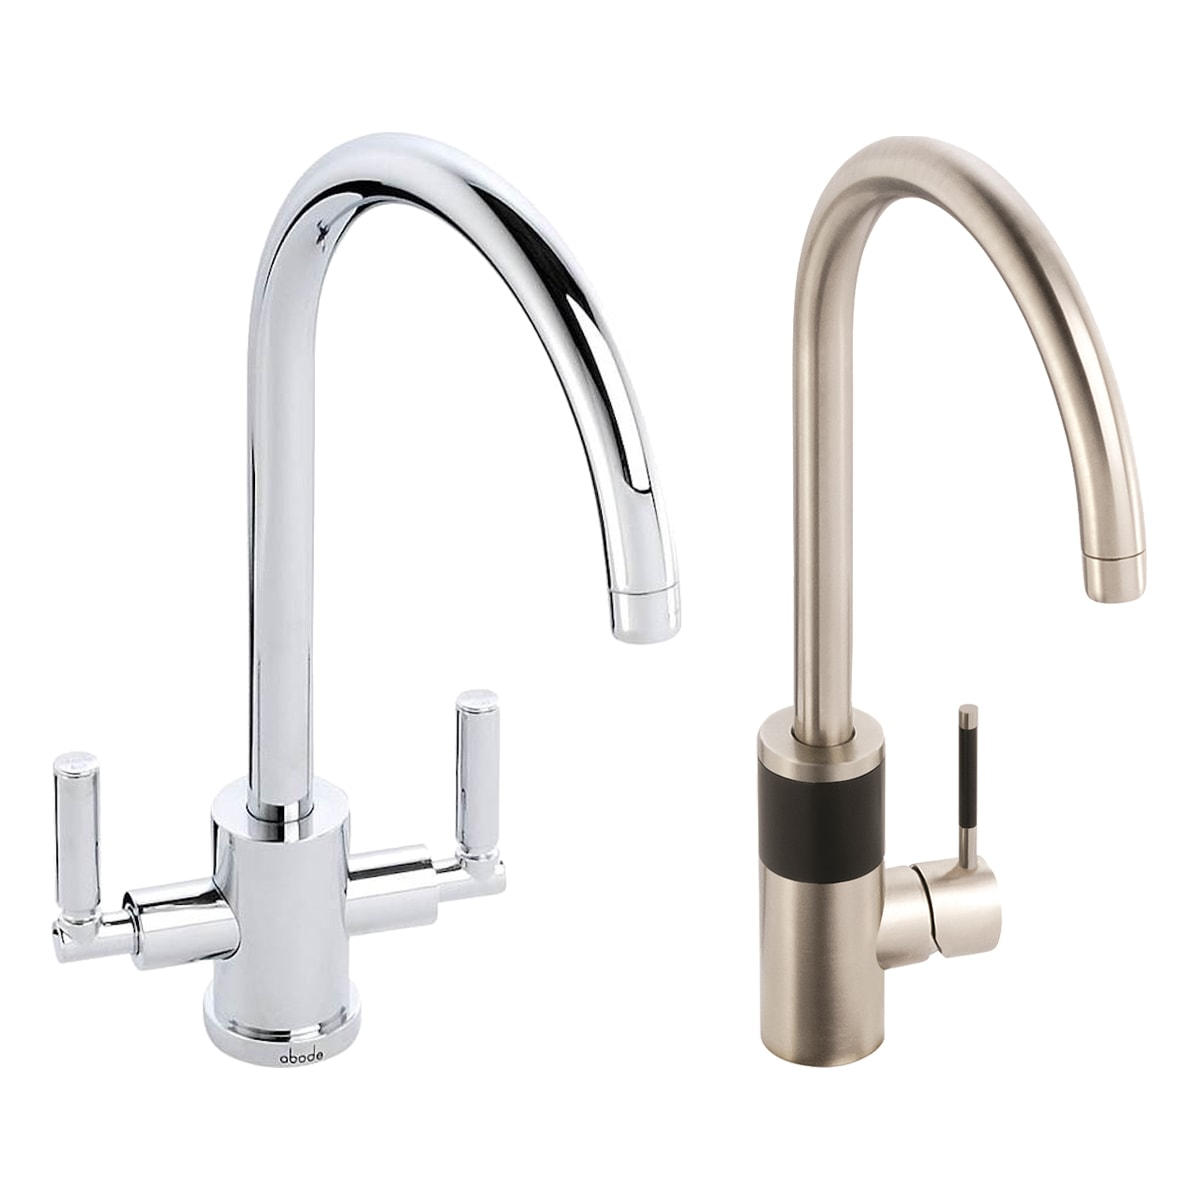 3 Way Water Filter Taps